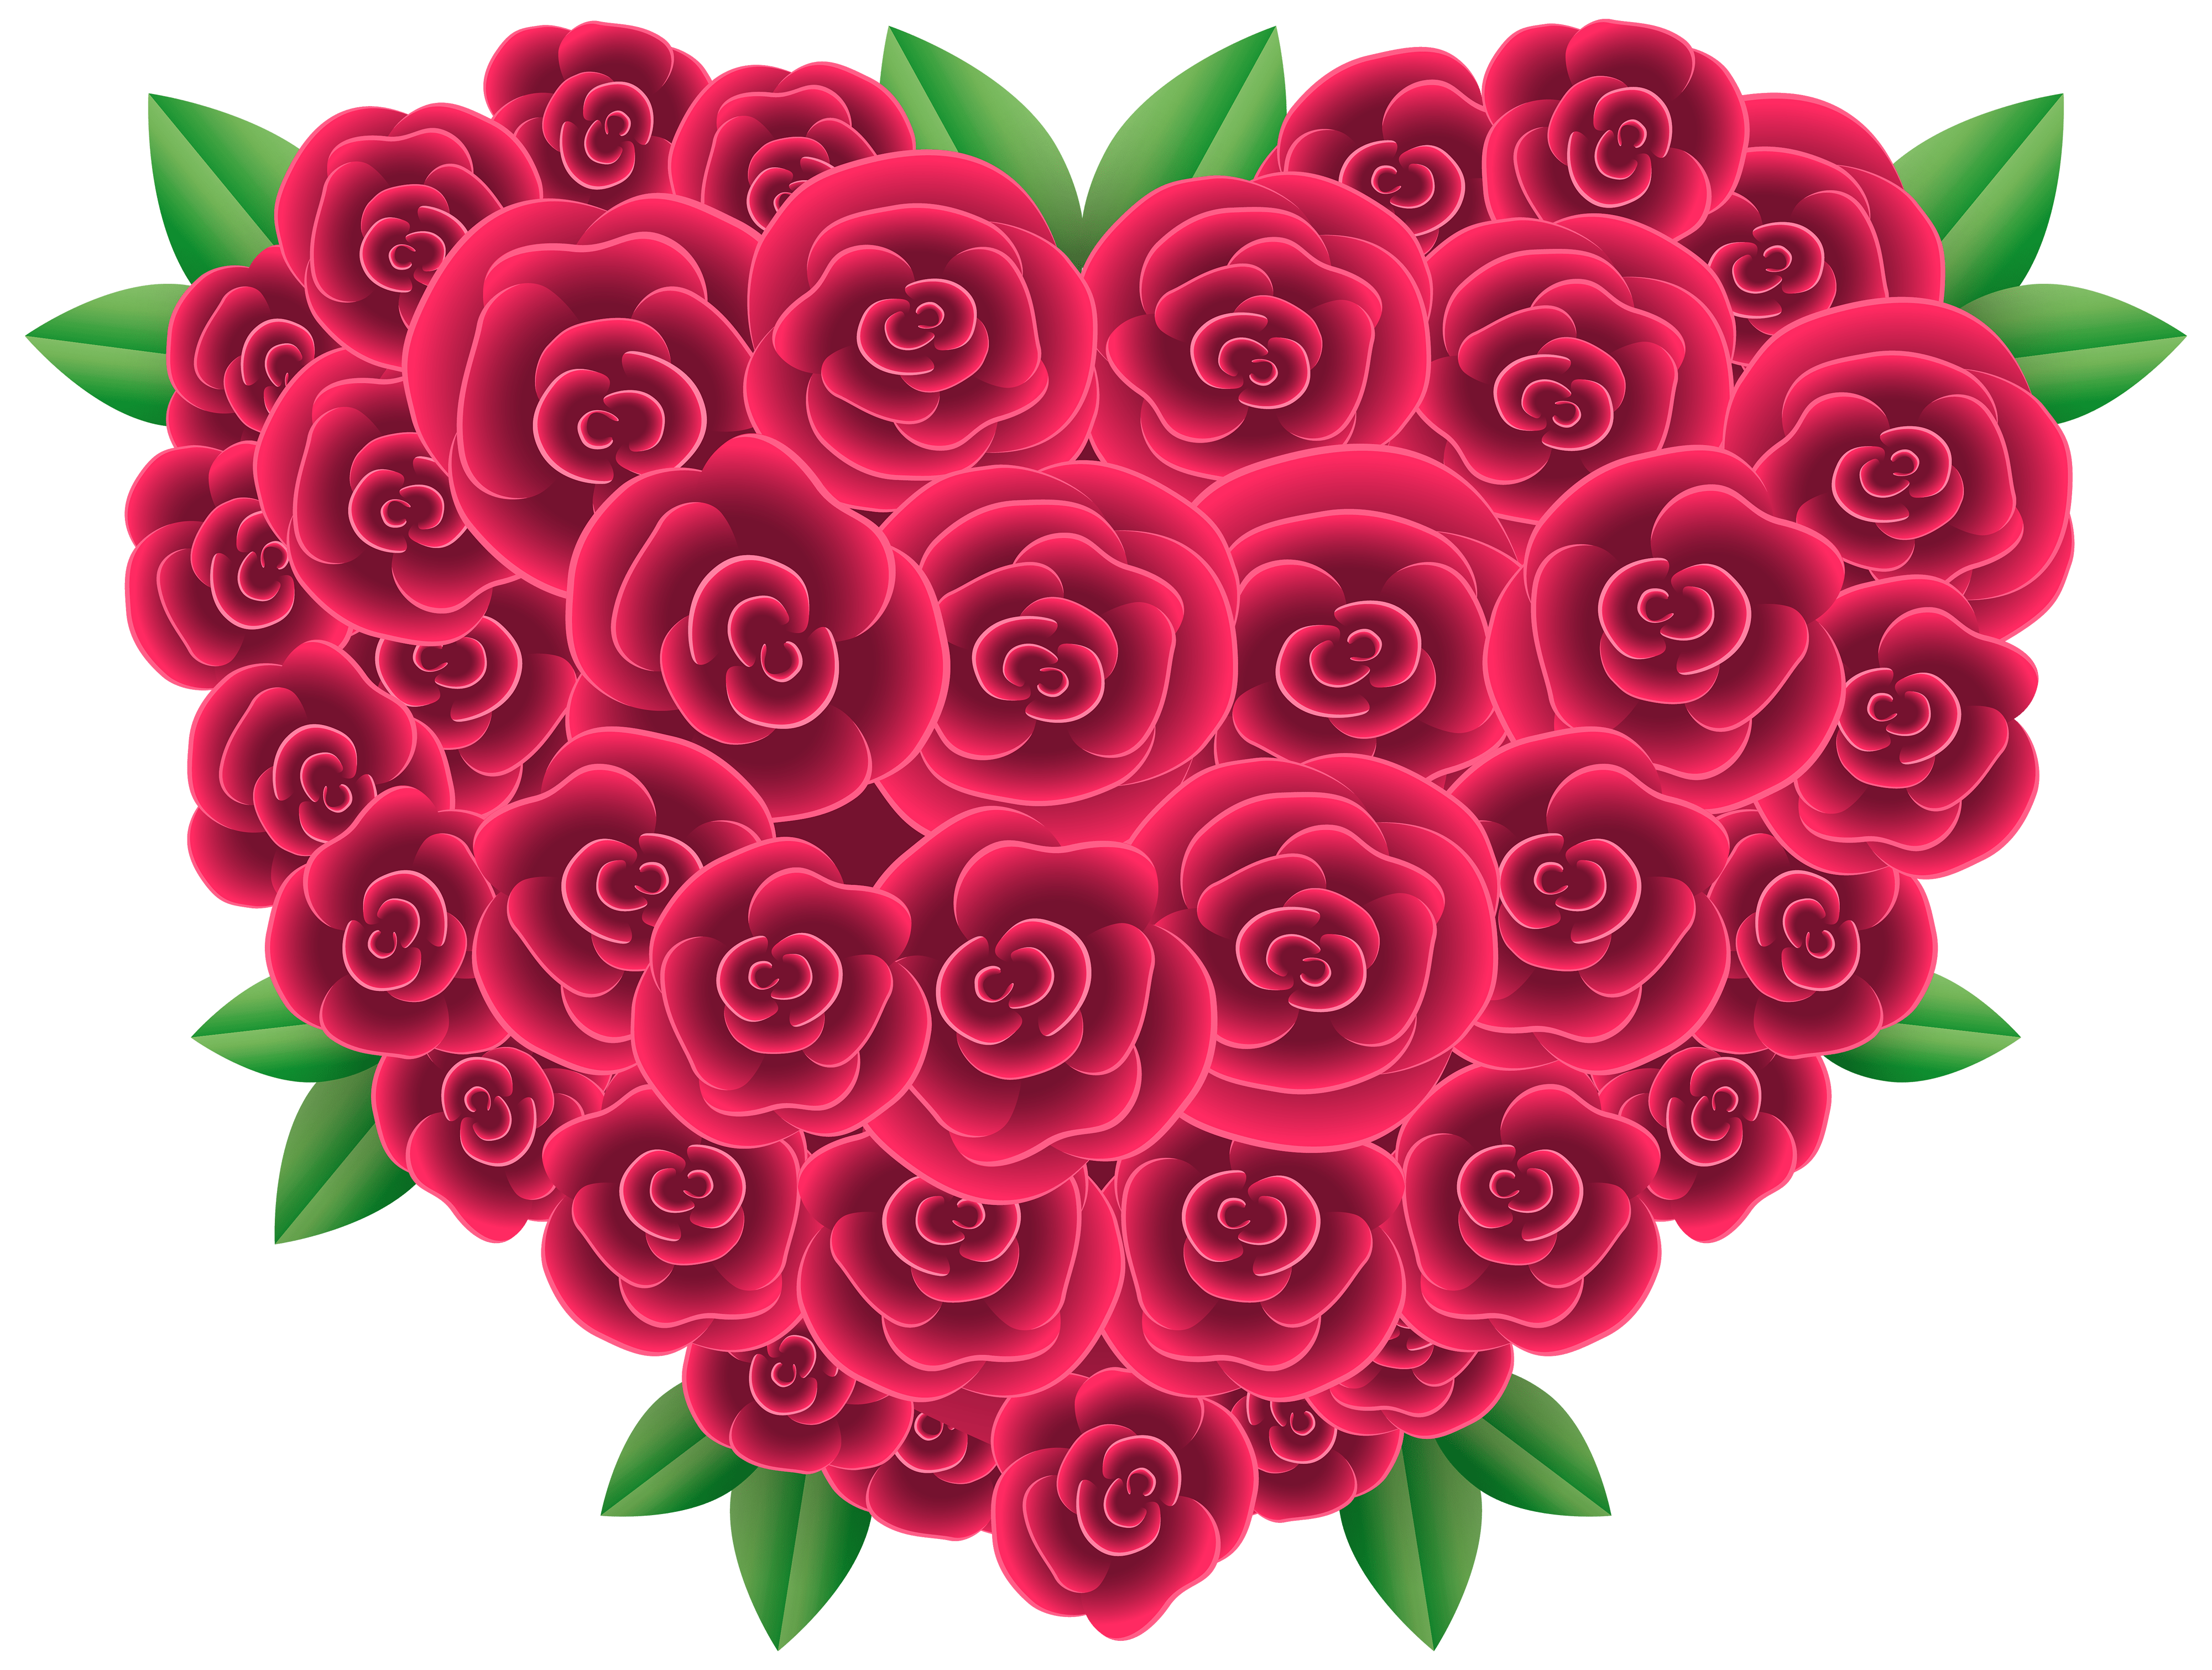 Floral Heart PNG clipart